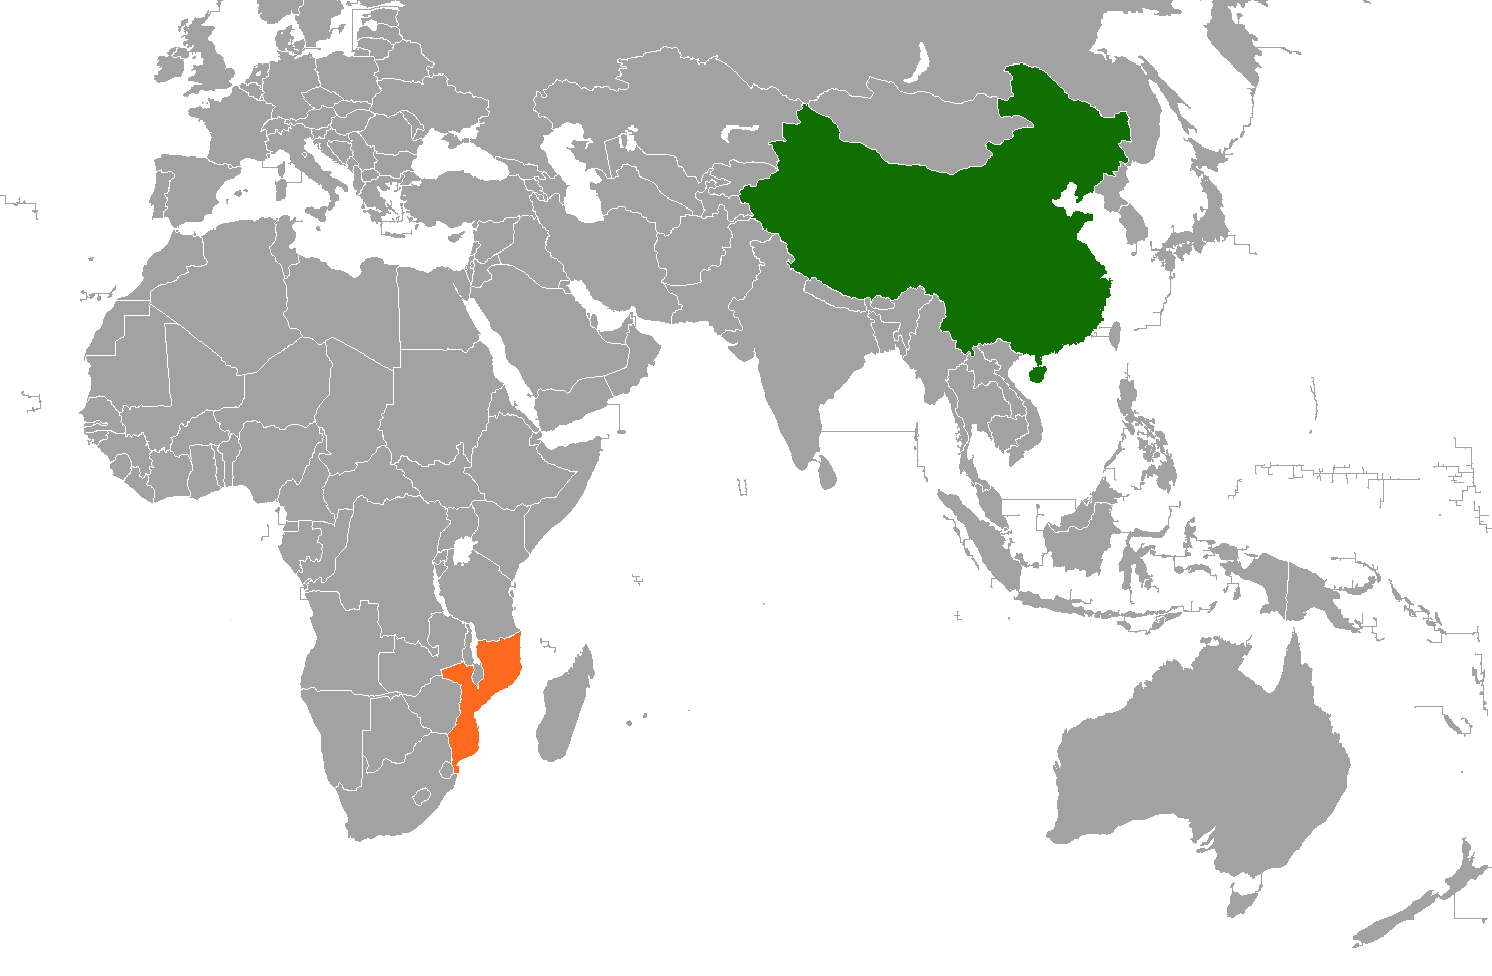 China and Mozambique on world map